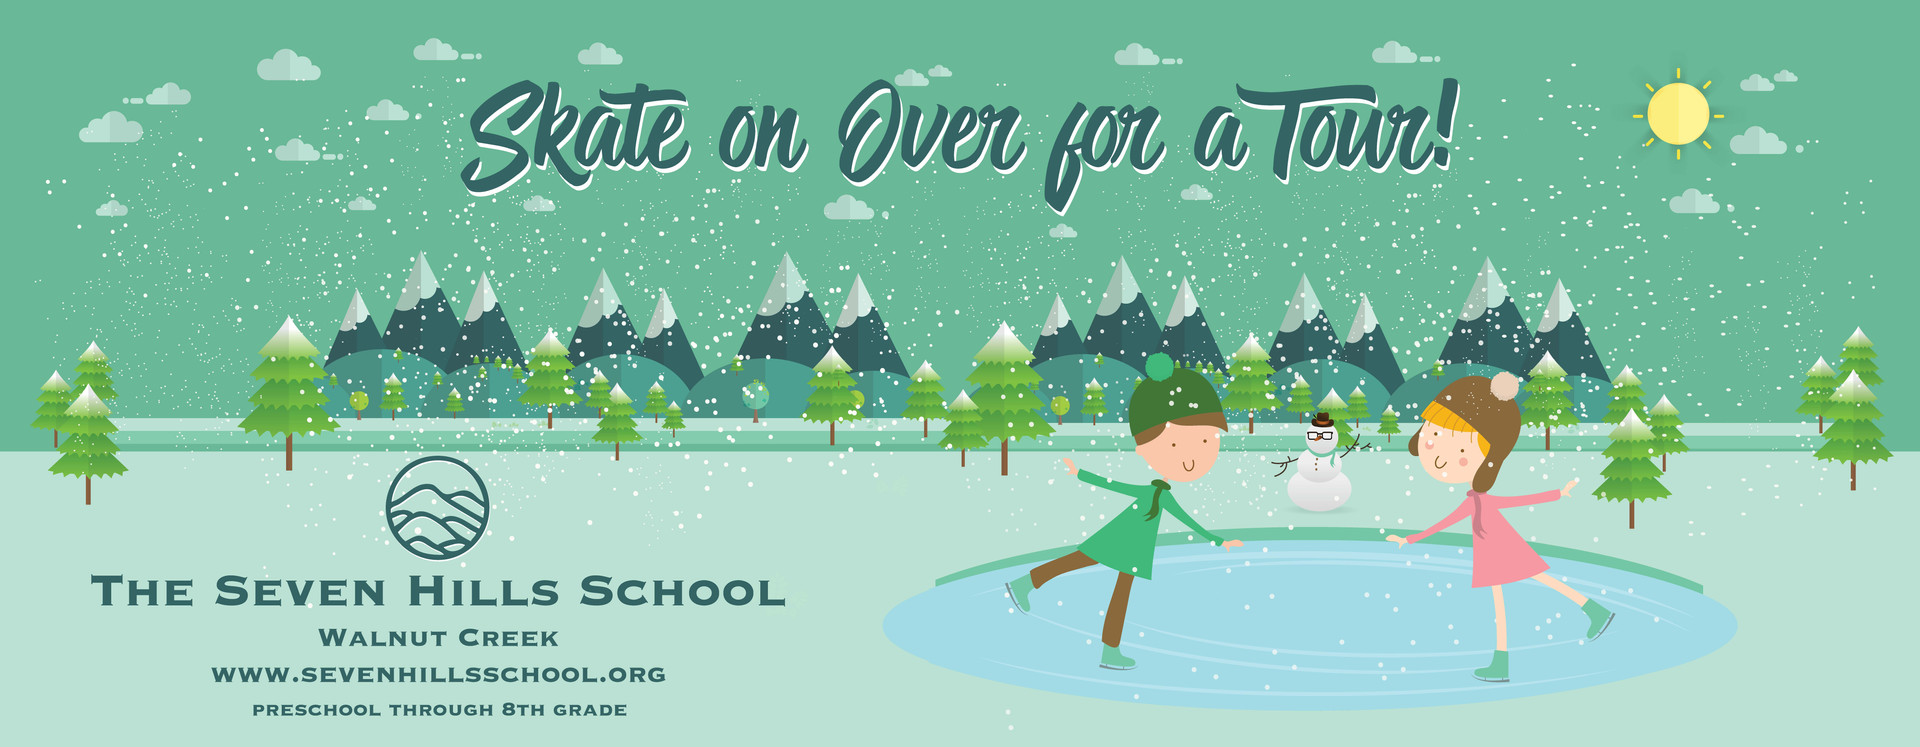 Ad banner for school at ice skating rink